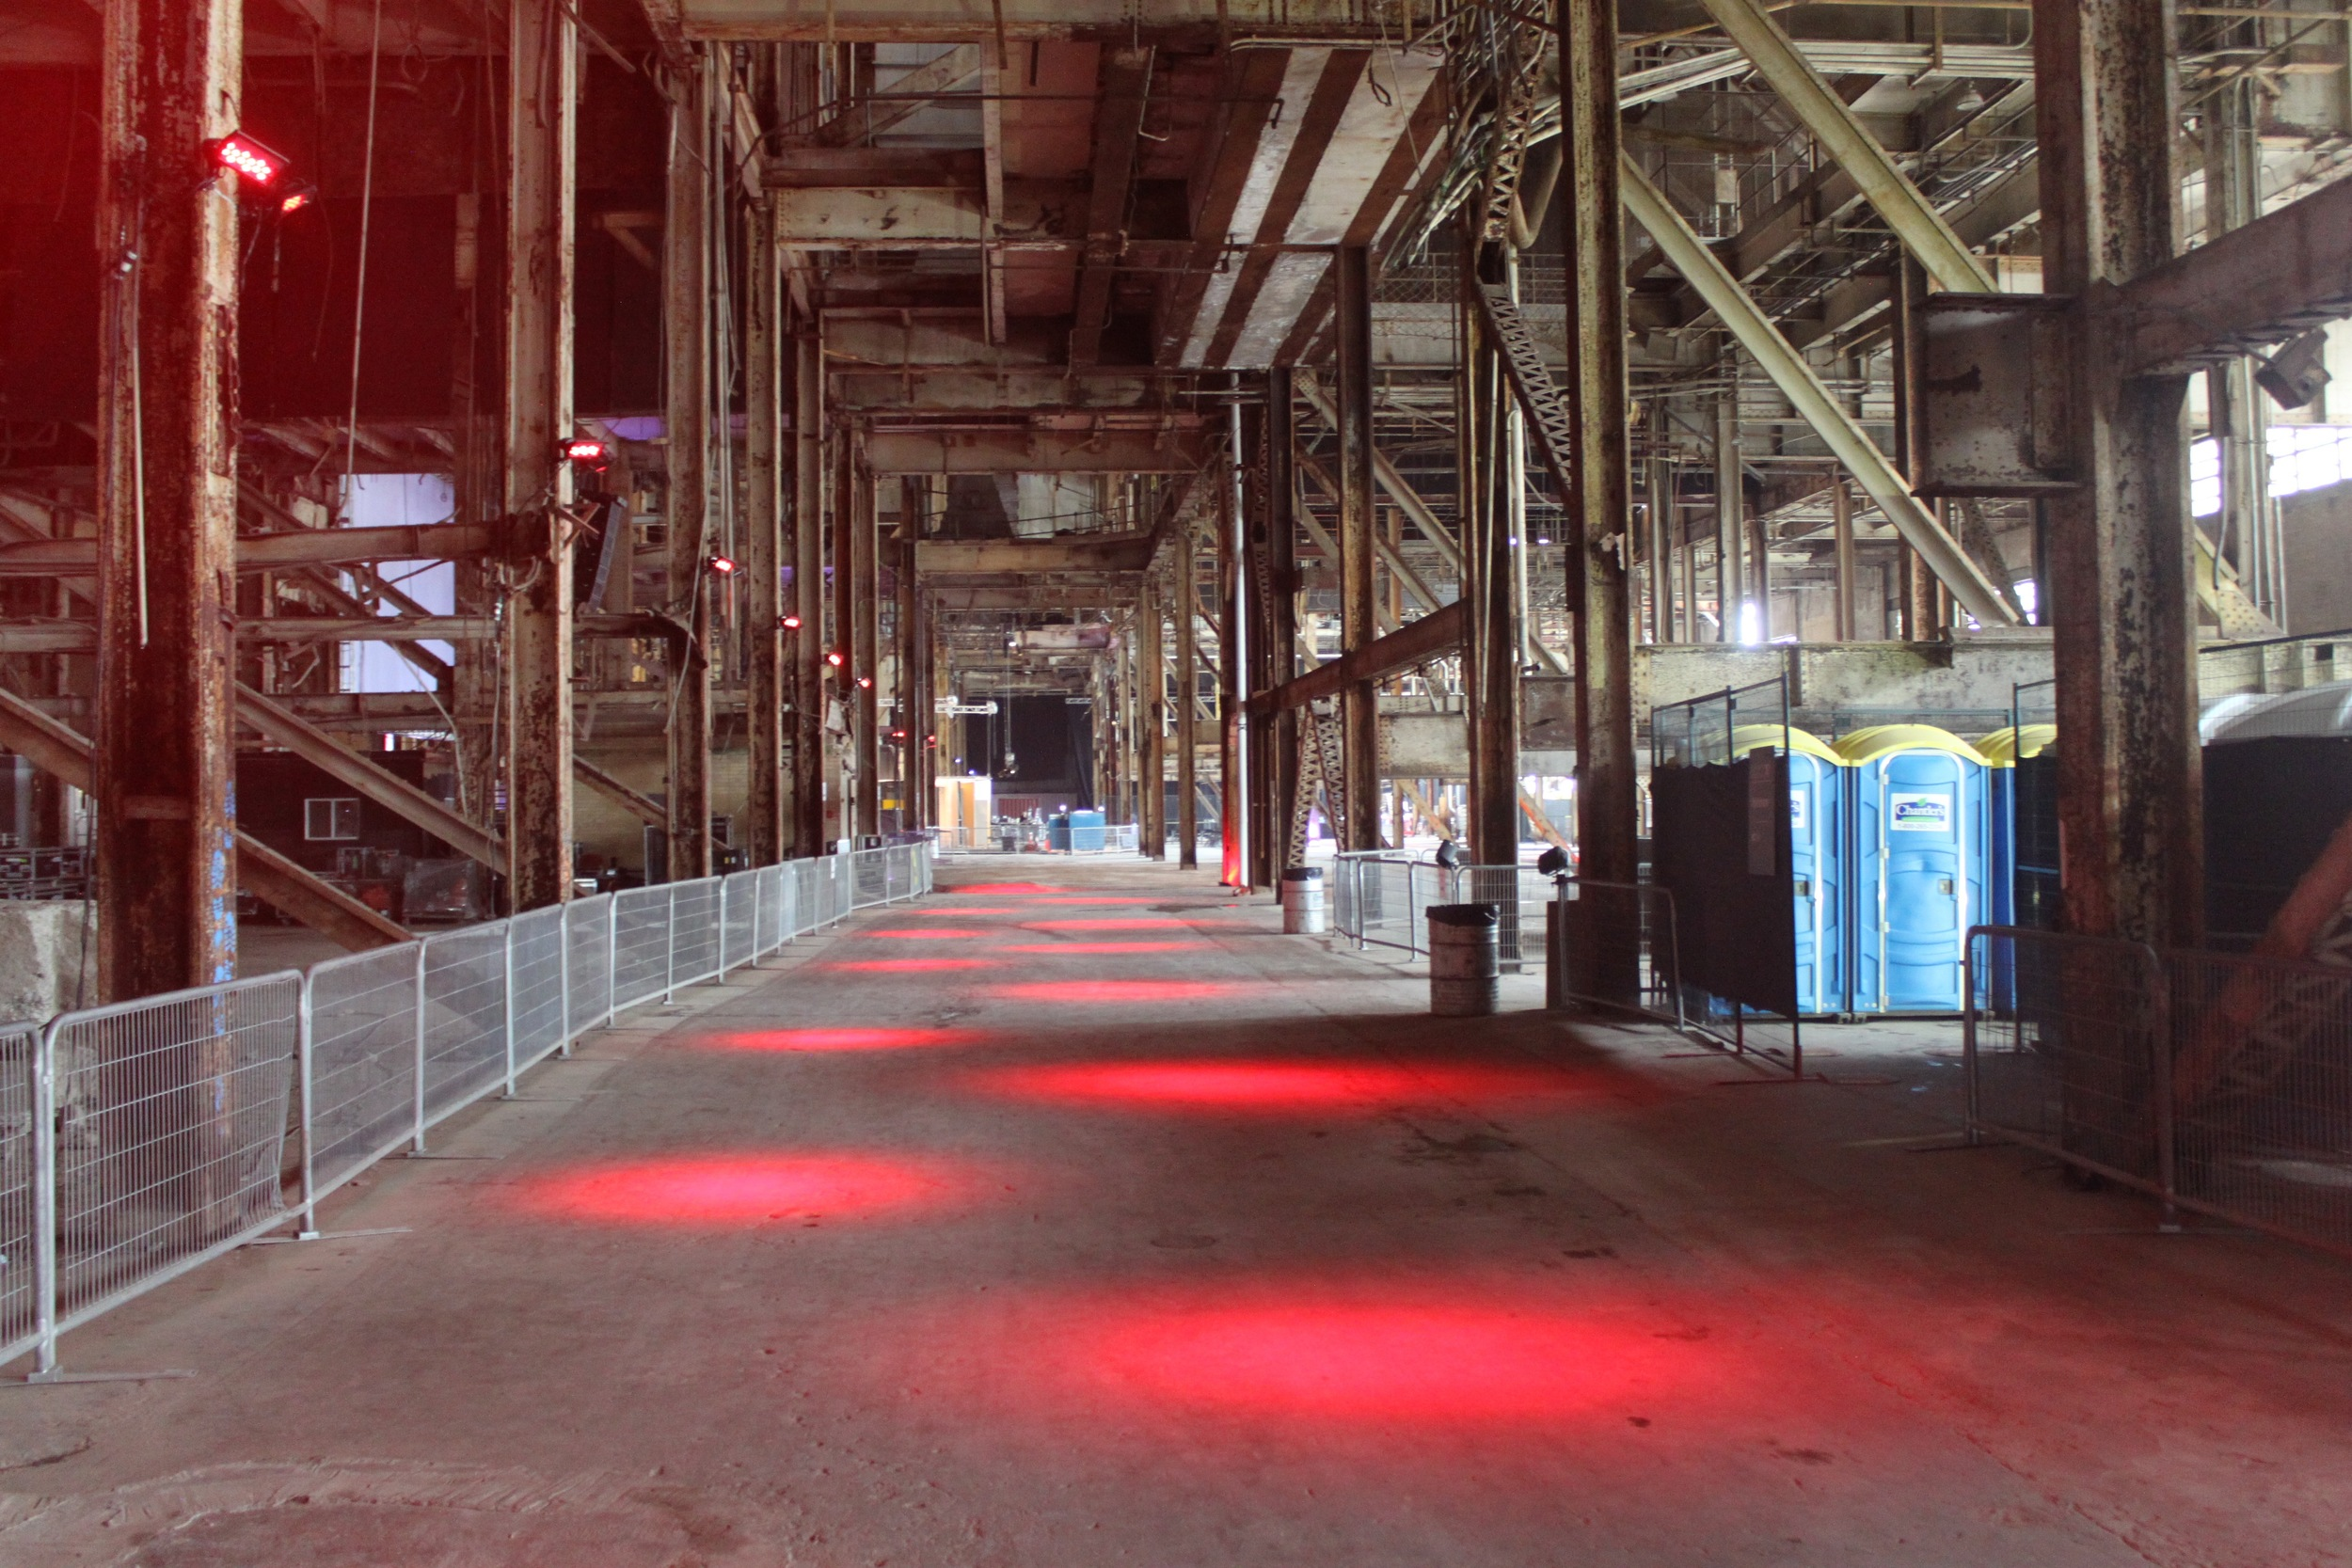 Picture of interior of the Hearn. Red spotlights are featured on the floor